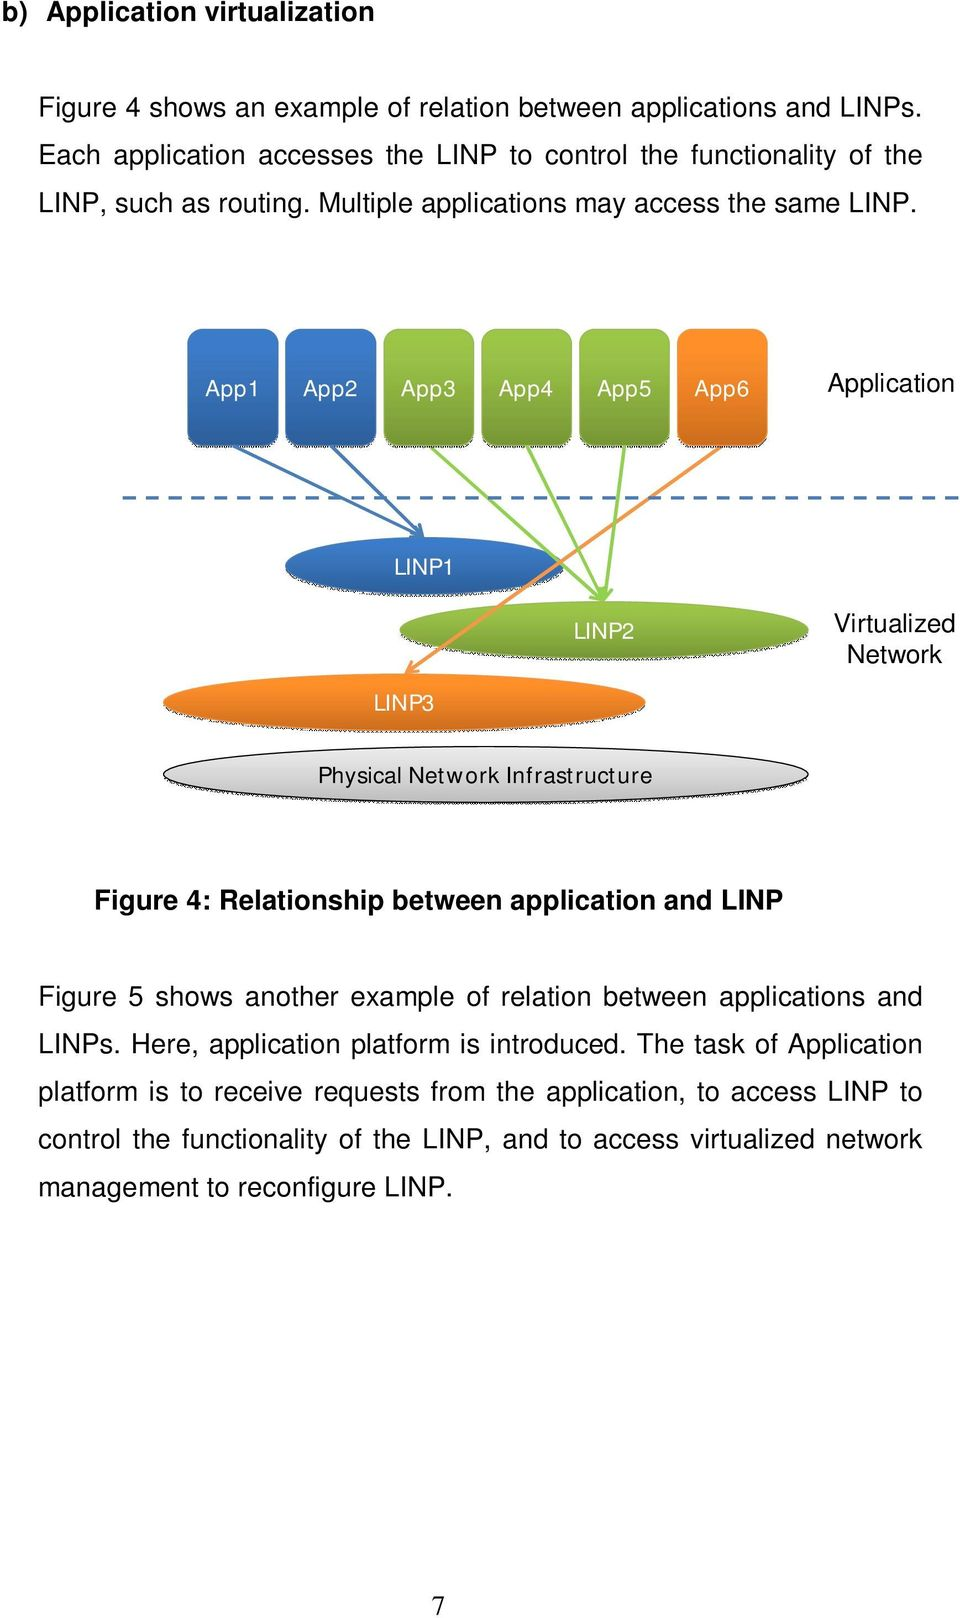 App1 App2 App3 App4 App5 App6 Application LINP1 LINP2 Virtualized Network LINP3 Physical Network Infrastructure Figure 4: Relationship between application and LINP Figure 5 shows